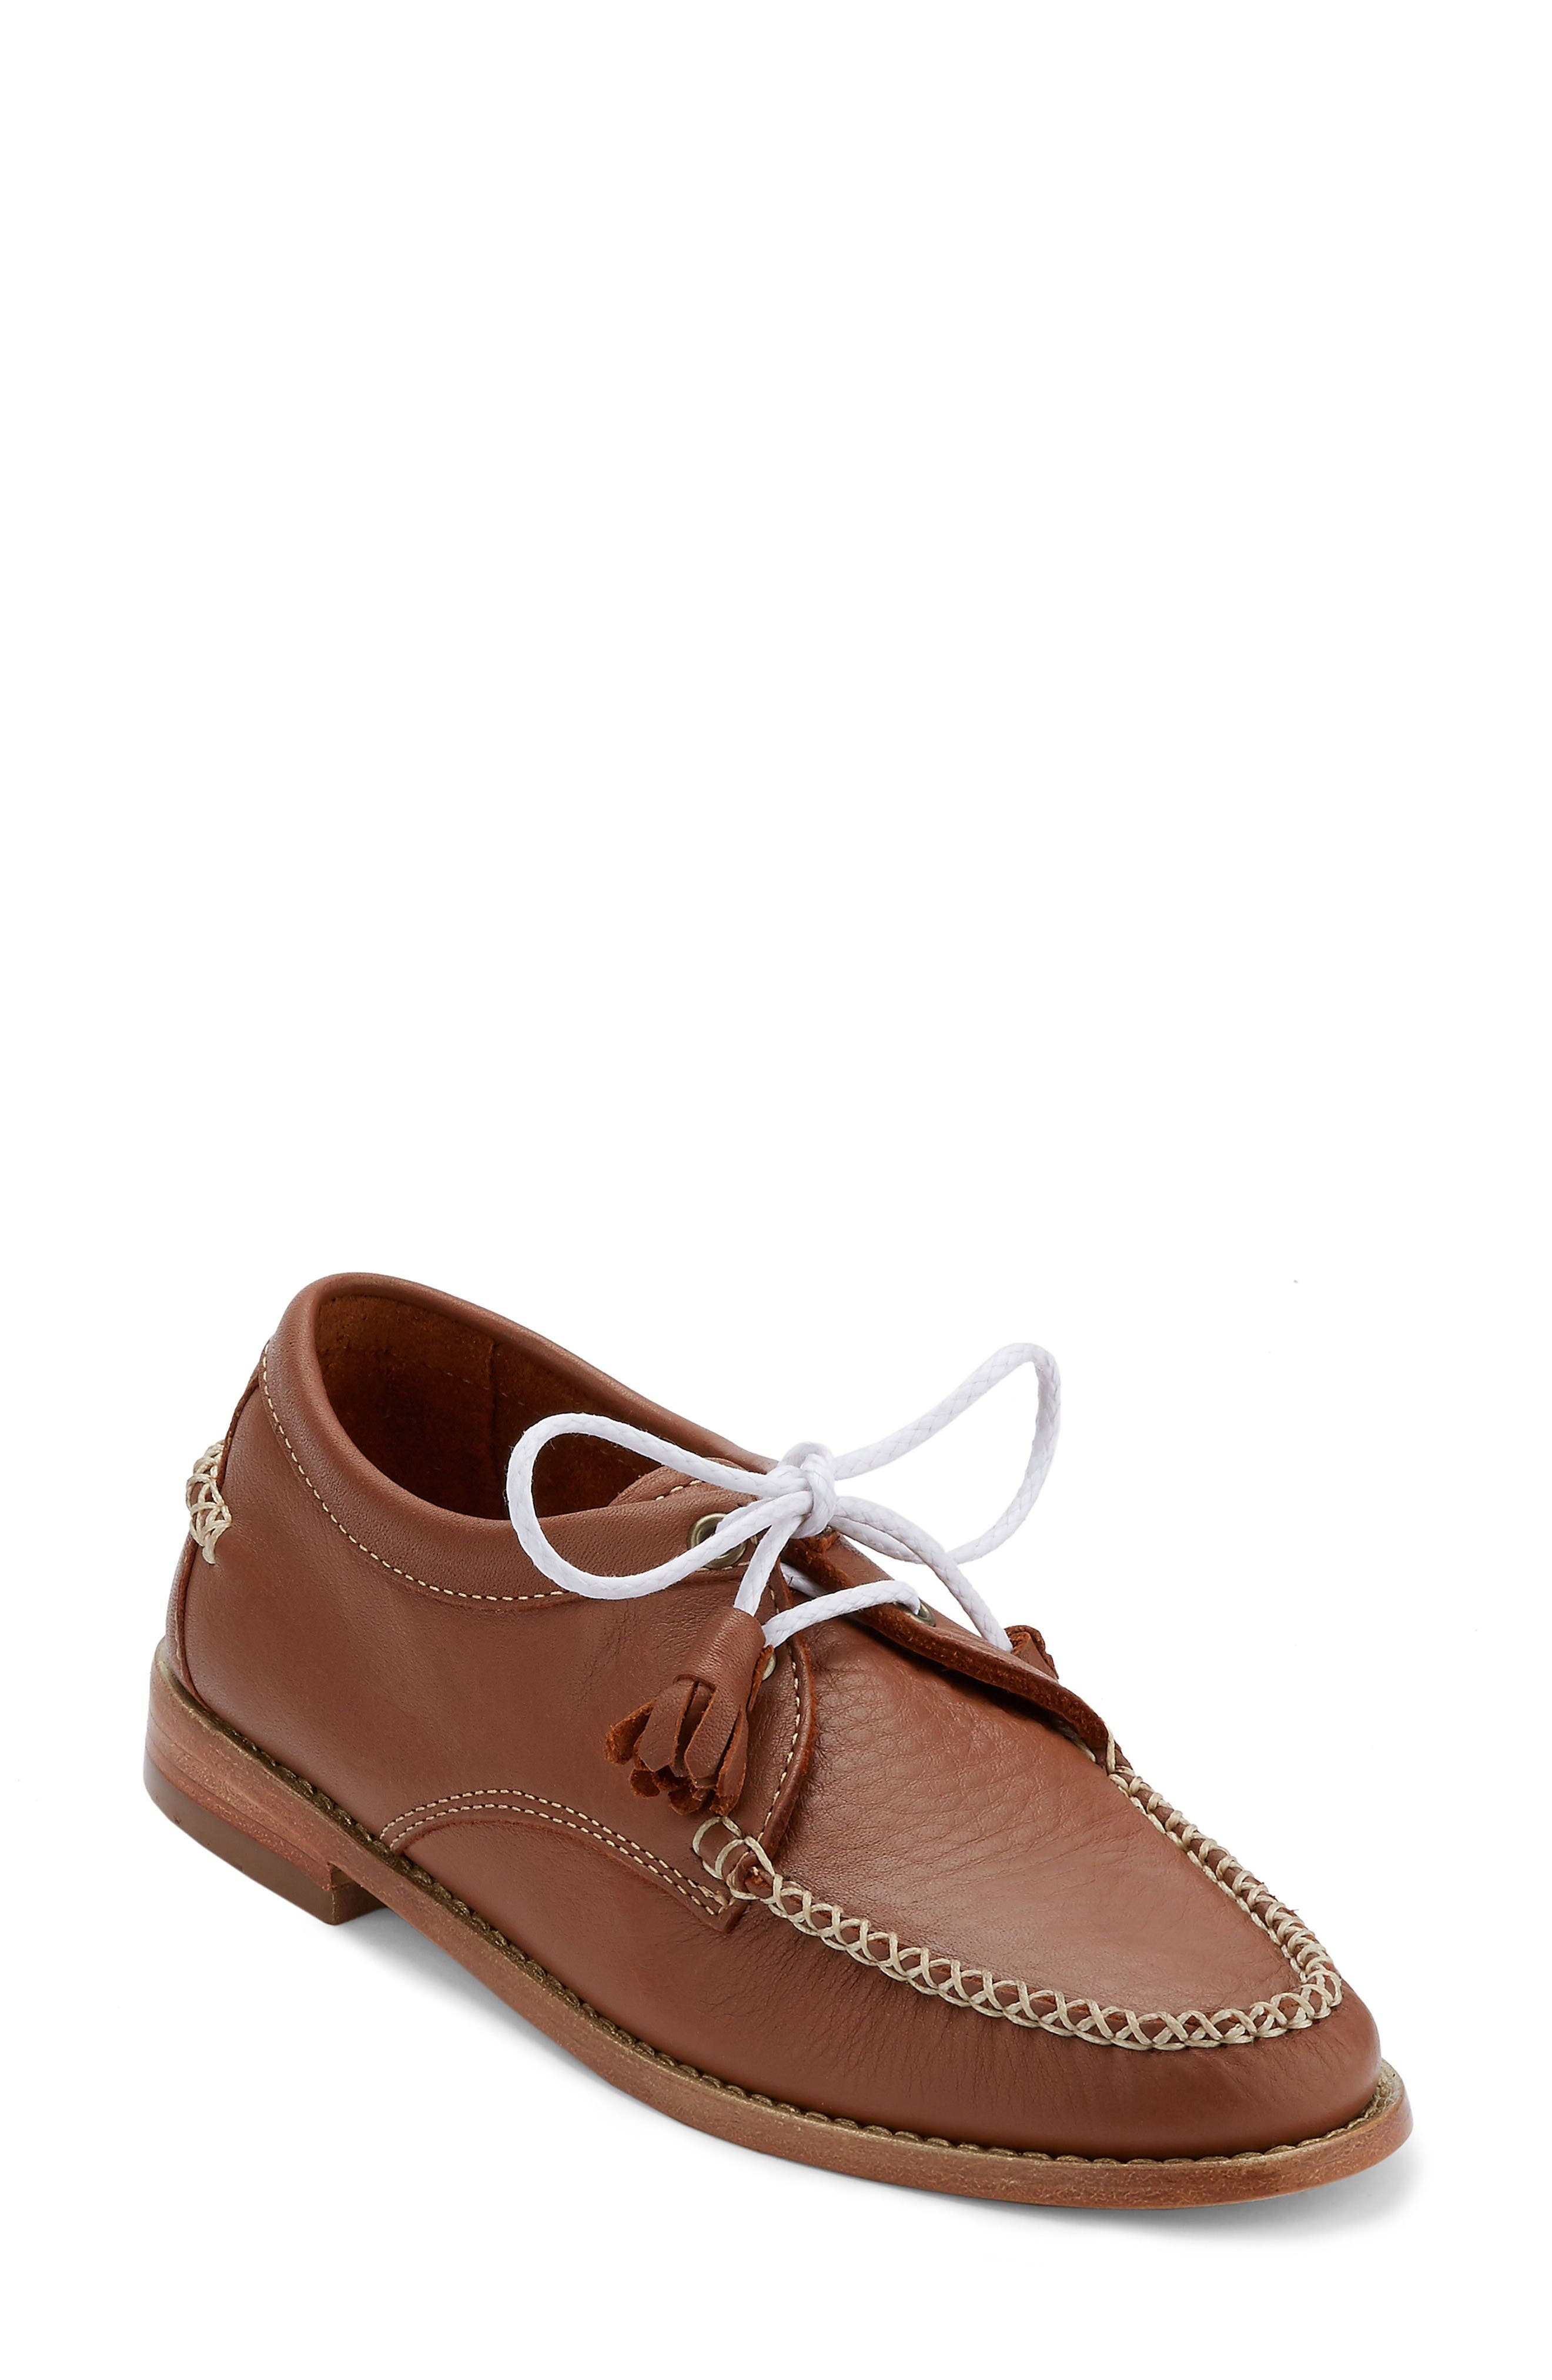 G.H. Bass & Co. 'Winnie' Leather Oxford (Women)